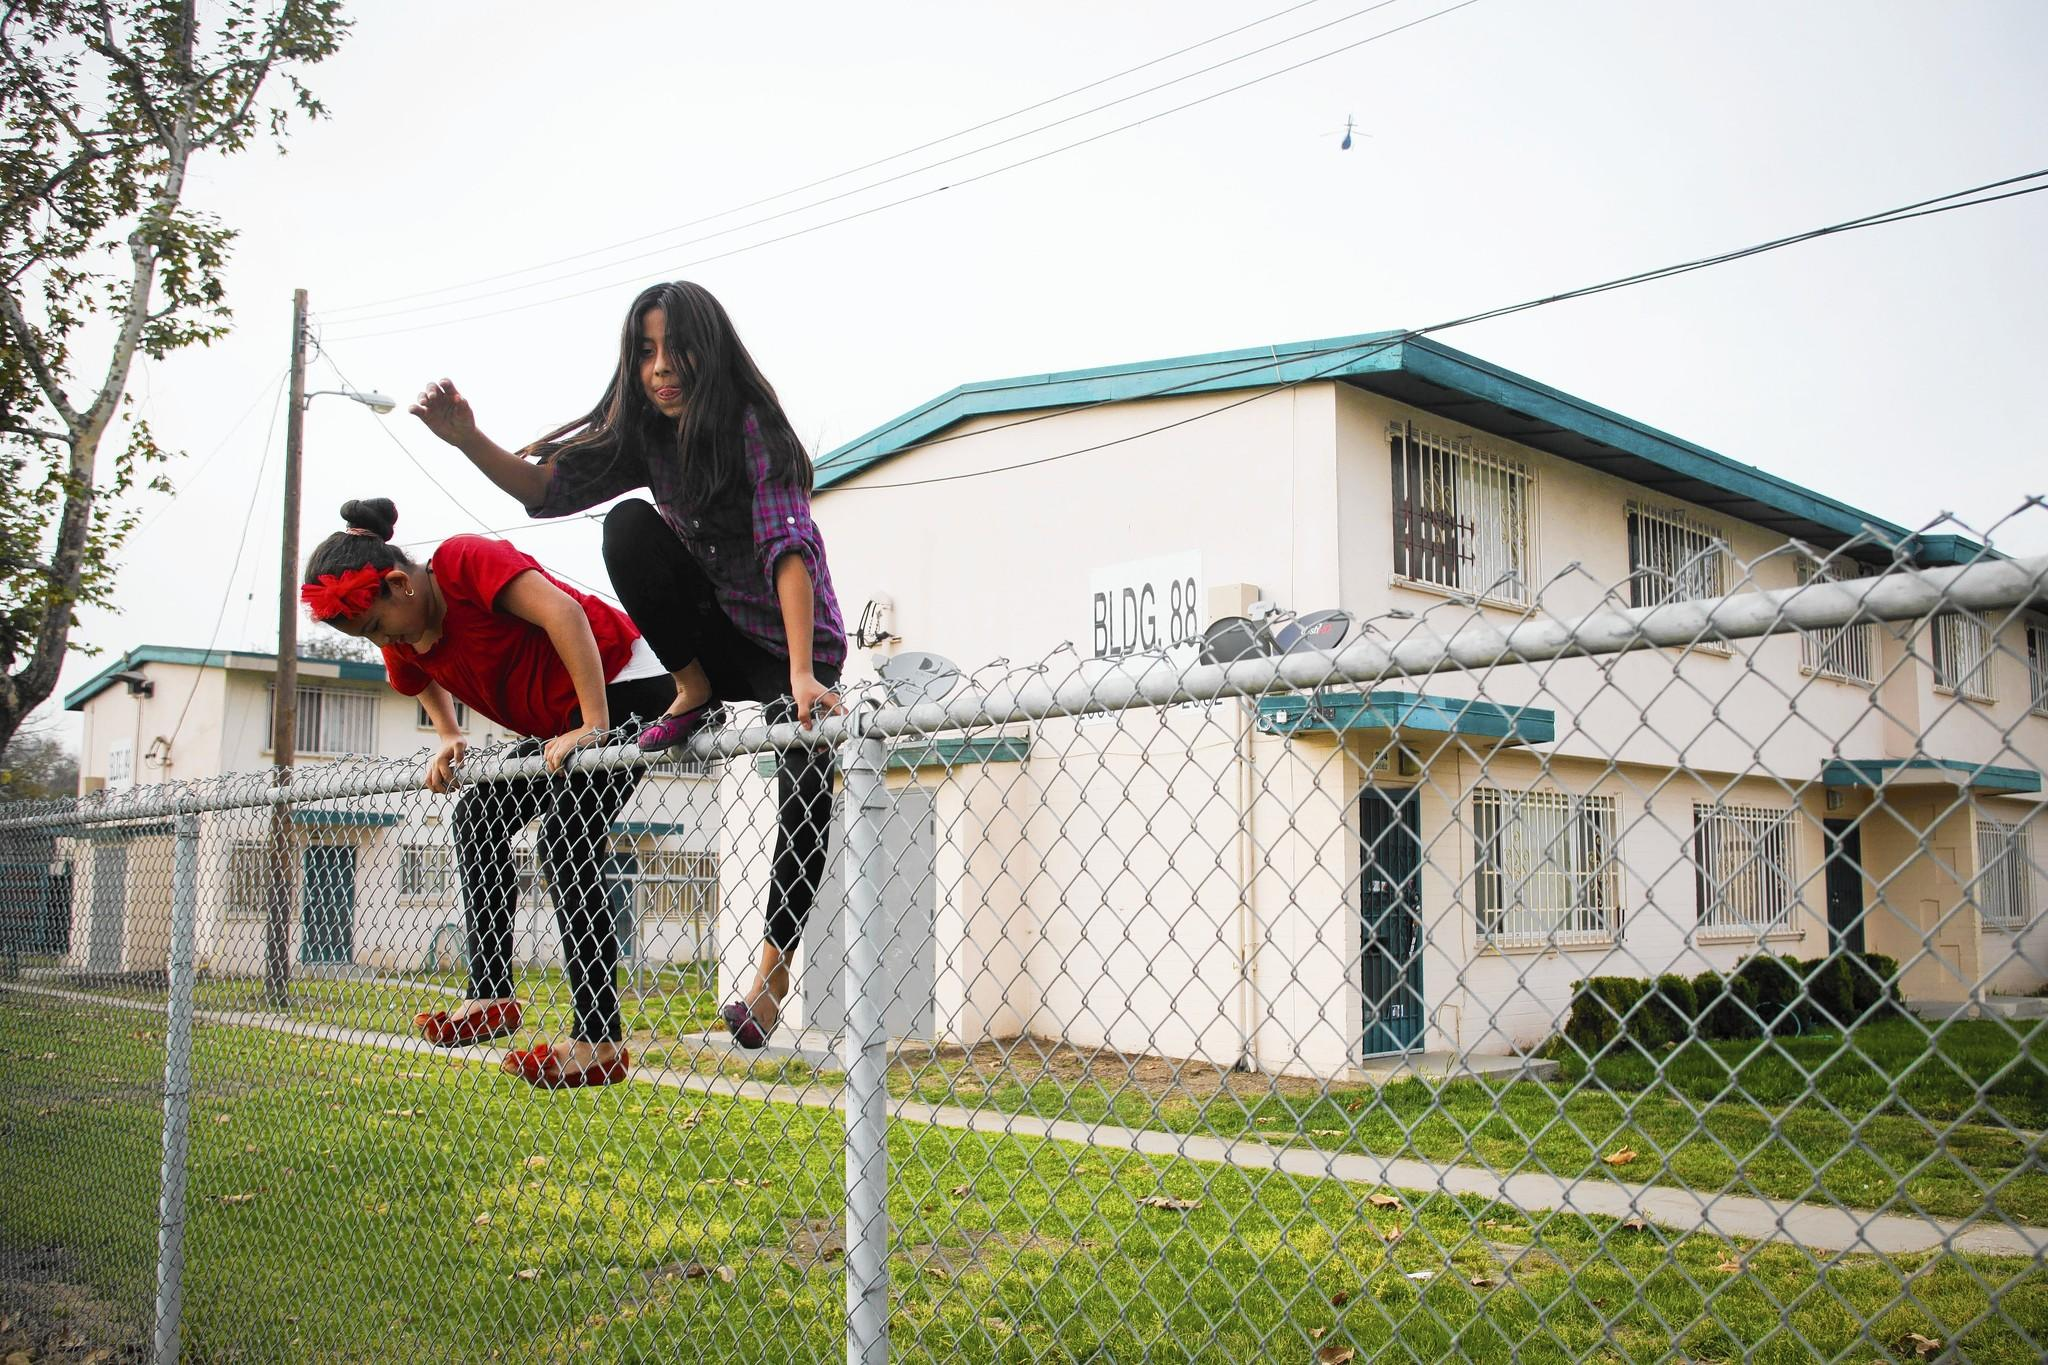 Jasmine Bermejo, left, and Rosario Gomez race each other over fences in Jordan Downs, one of the oldest housing projects in Los Angeles. The city's revitalization plan hinged on a $30-million federal grant that would have been used to leverage other funds.